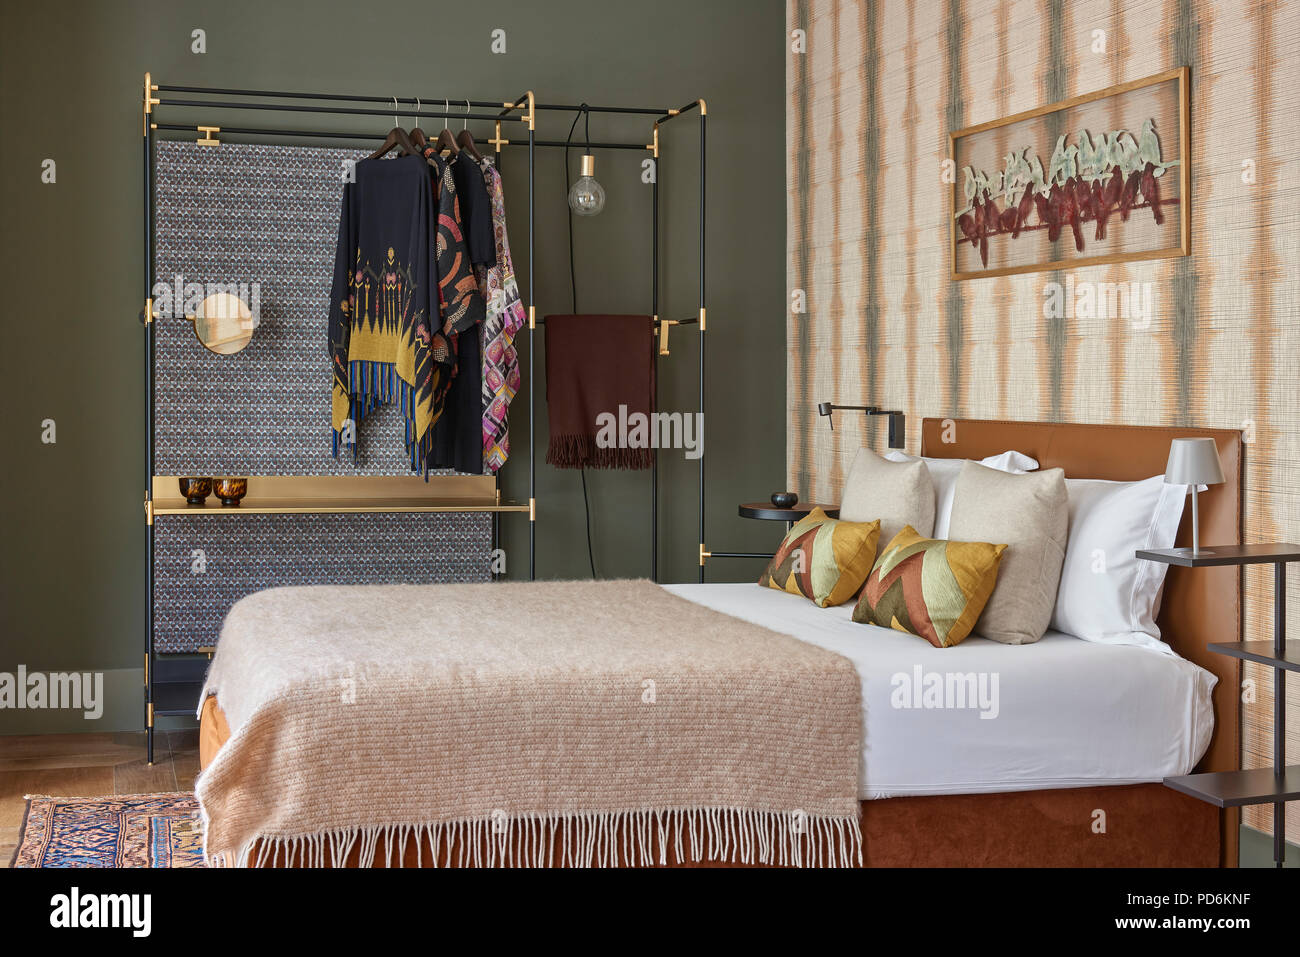 Ponchos hang on clothes rail by double bed with blaket. - Stock Image